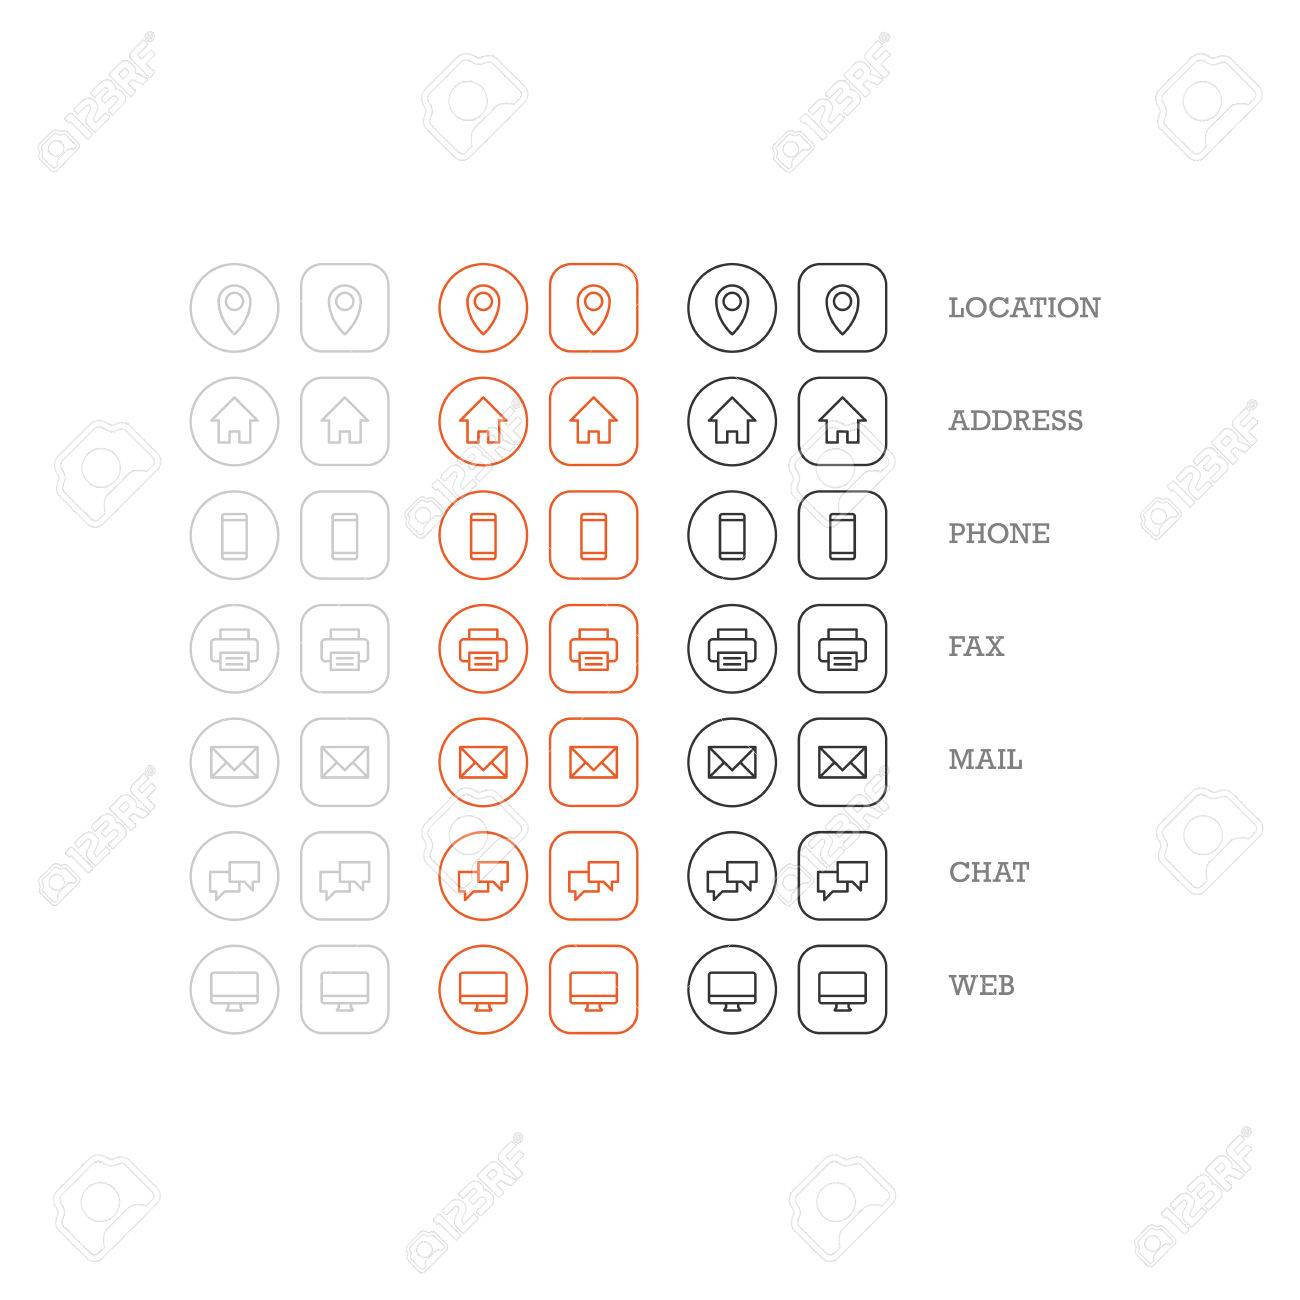 Flat Multipurpose Business Card Icon Set Of Web Icons For Business ...